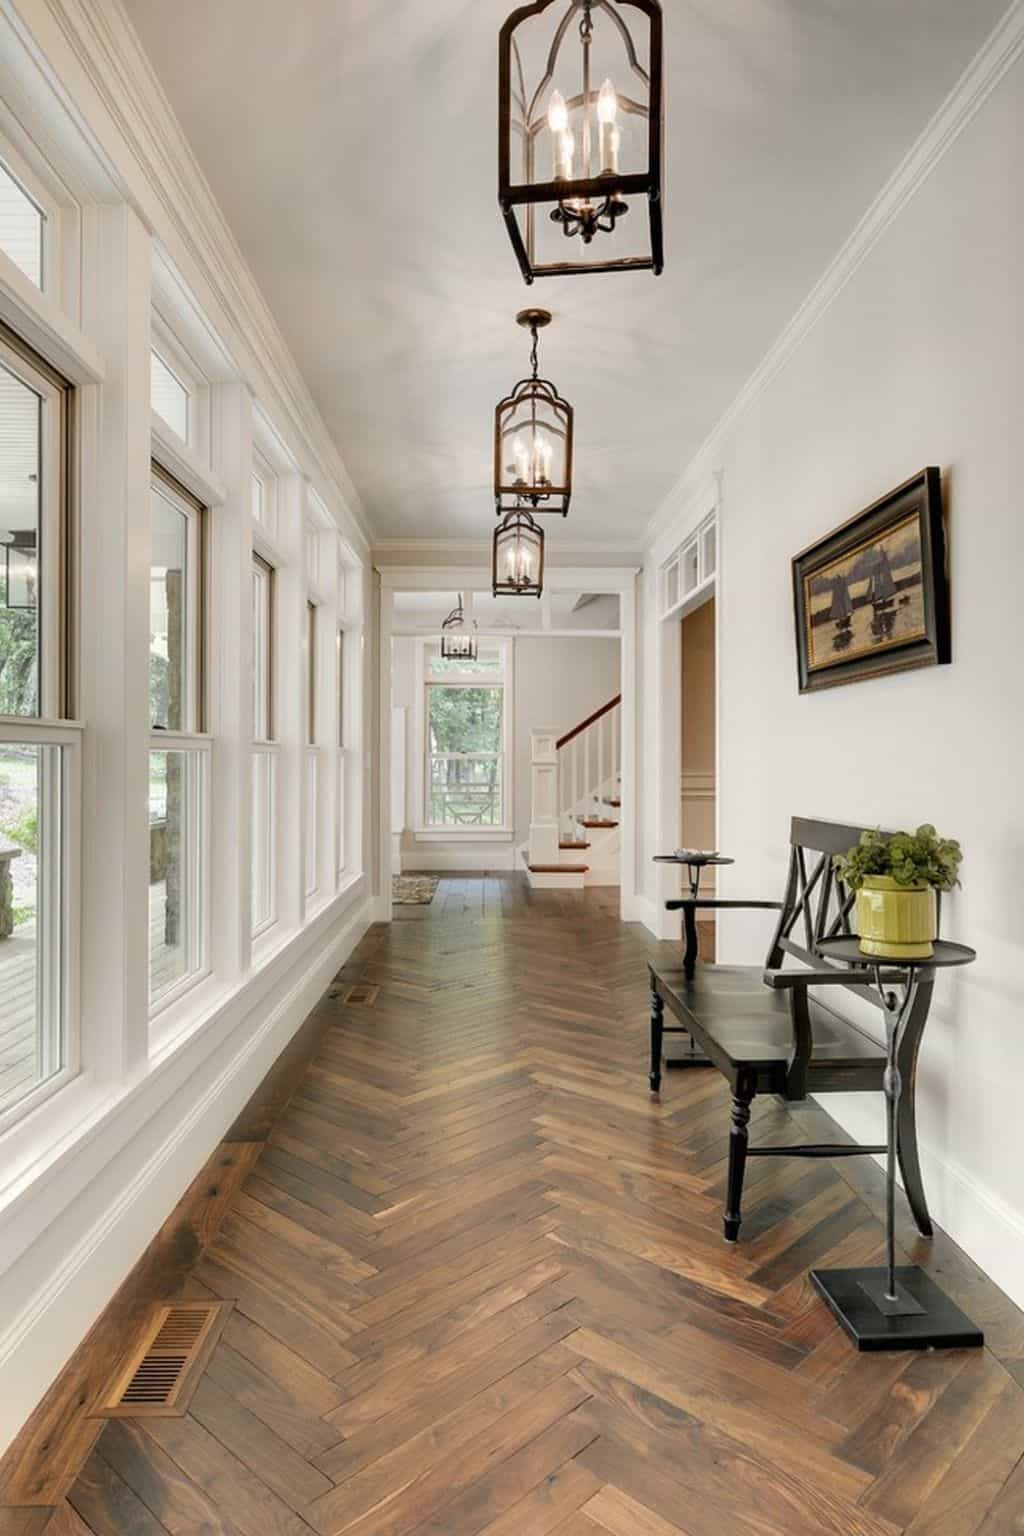 Wood Floor And Wall Colors Hallway With Neutral Wall Colors And Herringbone Wooden Floors In